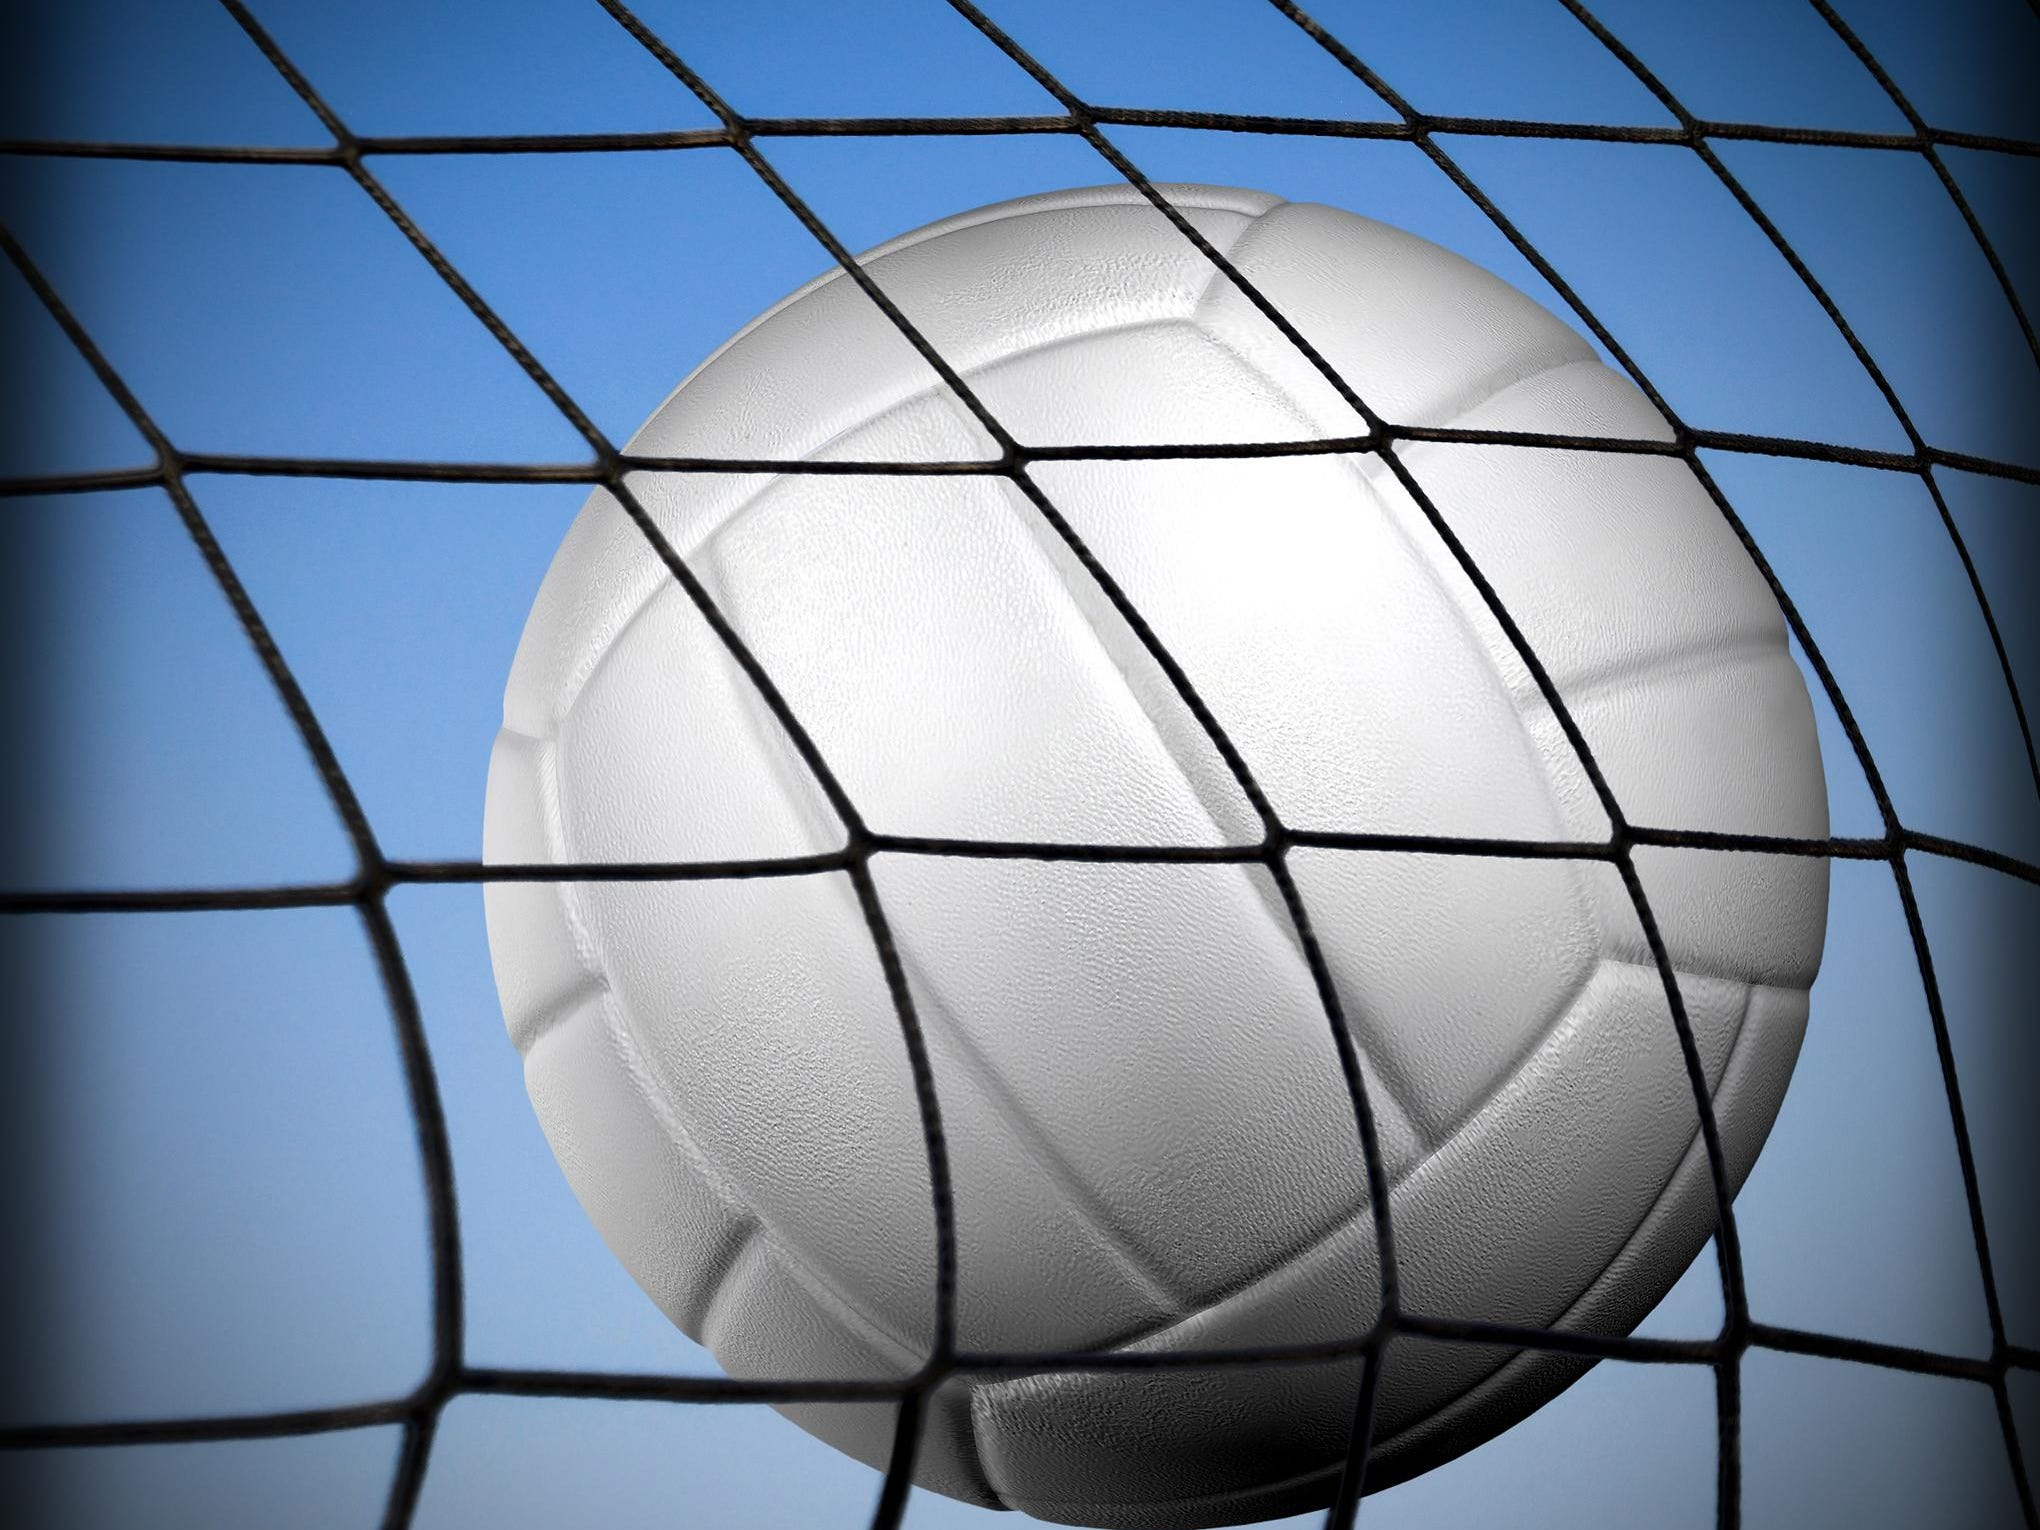 Clarksville High and Clarksville Academy's volleyball teams captured victories Thursday night in varsity matches.